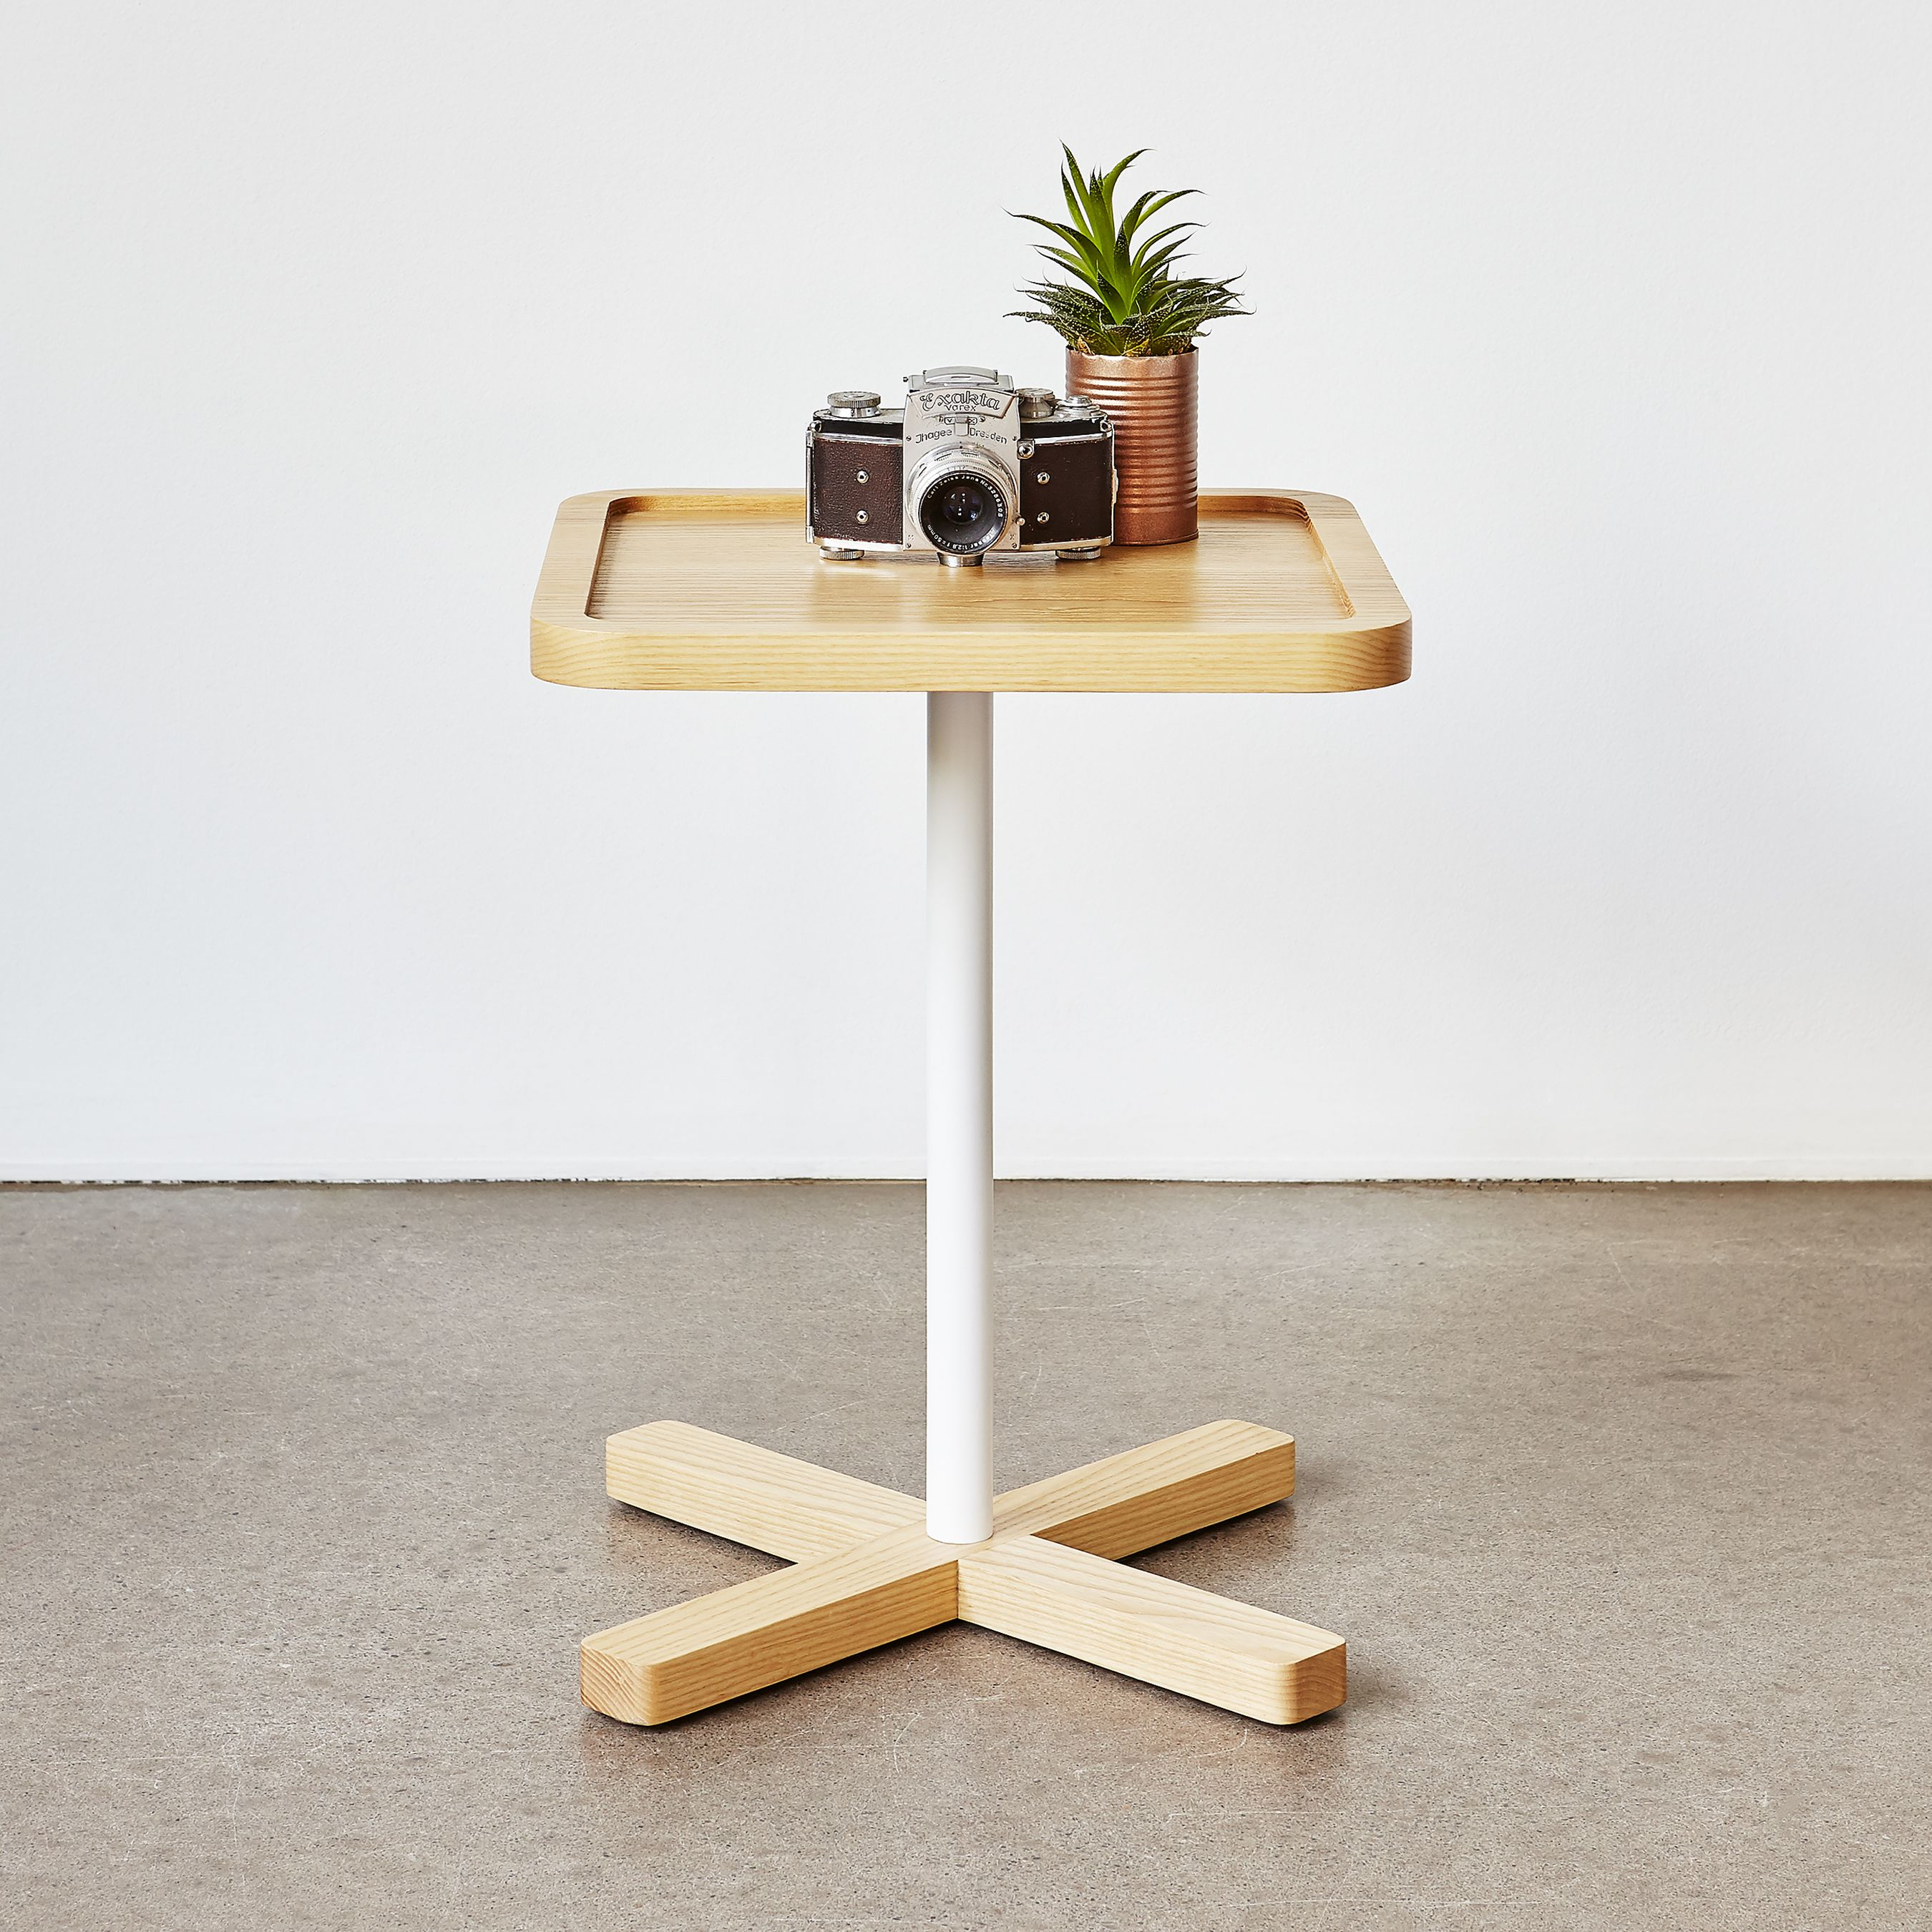 axis end table the organic nordic inspired mini accent design features solid wood routered top and all corners are softened round glass lamp tables danish modern side corner